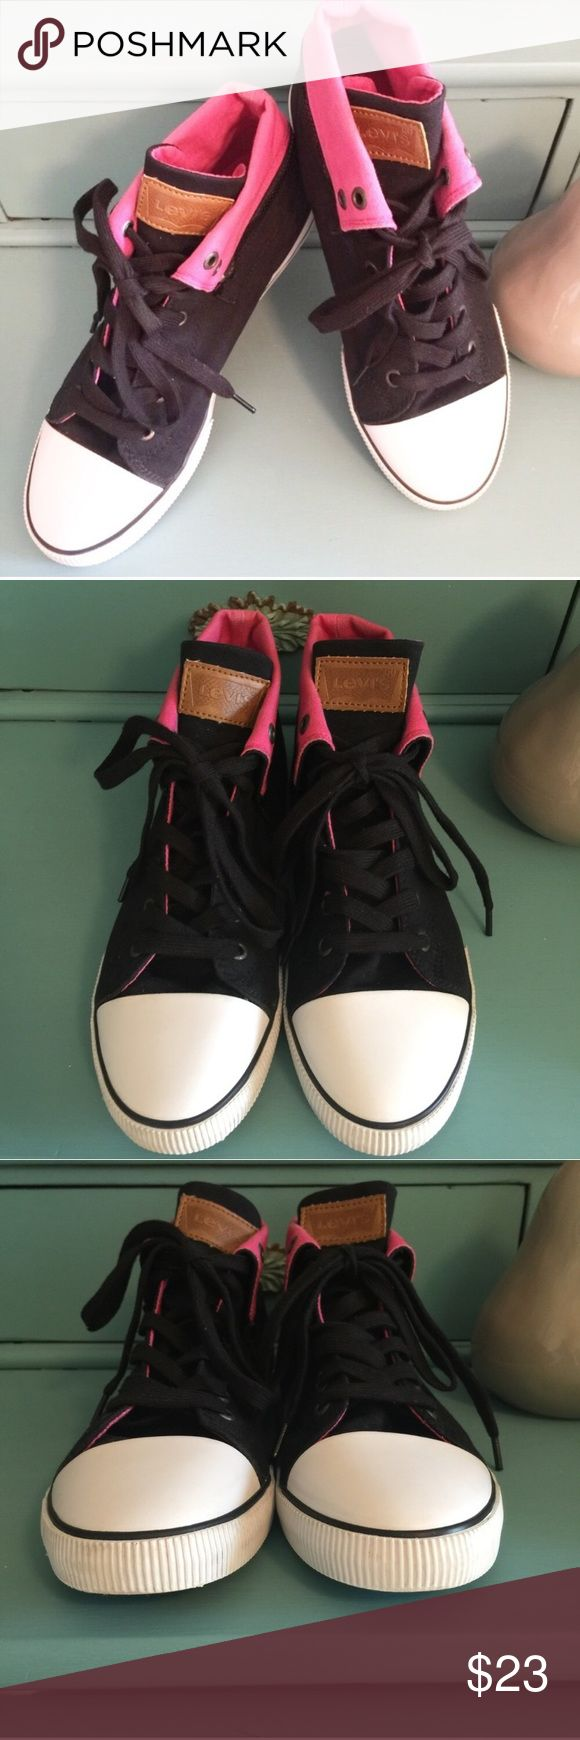 Levi's Black & Pink Rolled Down High Top Sneakers A classic brand Levi's version of a competitors.  This rolled down Lace-up high top sneaker is in really good used condition.  The Contrasting pink (to the black) is rolled and tacked down and has a working embellishment zipper.  Heel shows some wear down from walking though the soles are in really good condition.  Some fading/discoloration on the pink rolled down canvas.  Great to wear with jeans, shorts, and why not a dress or skirt!  They…